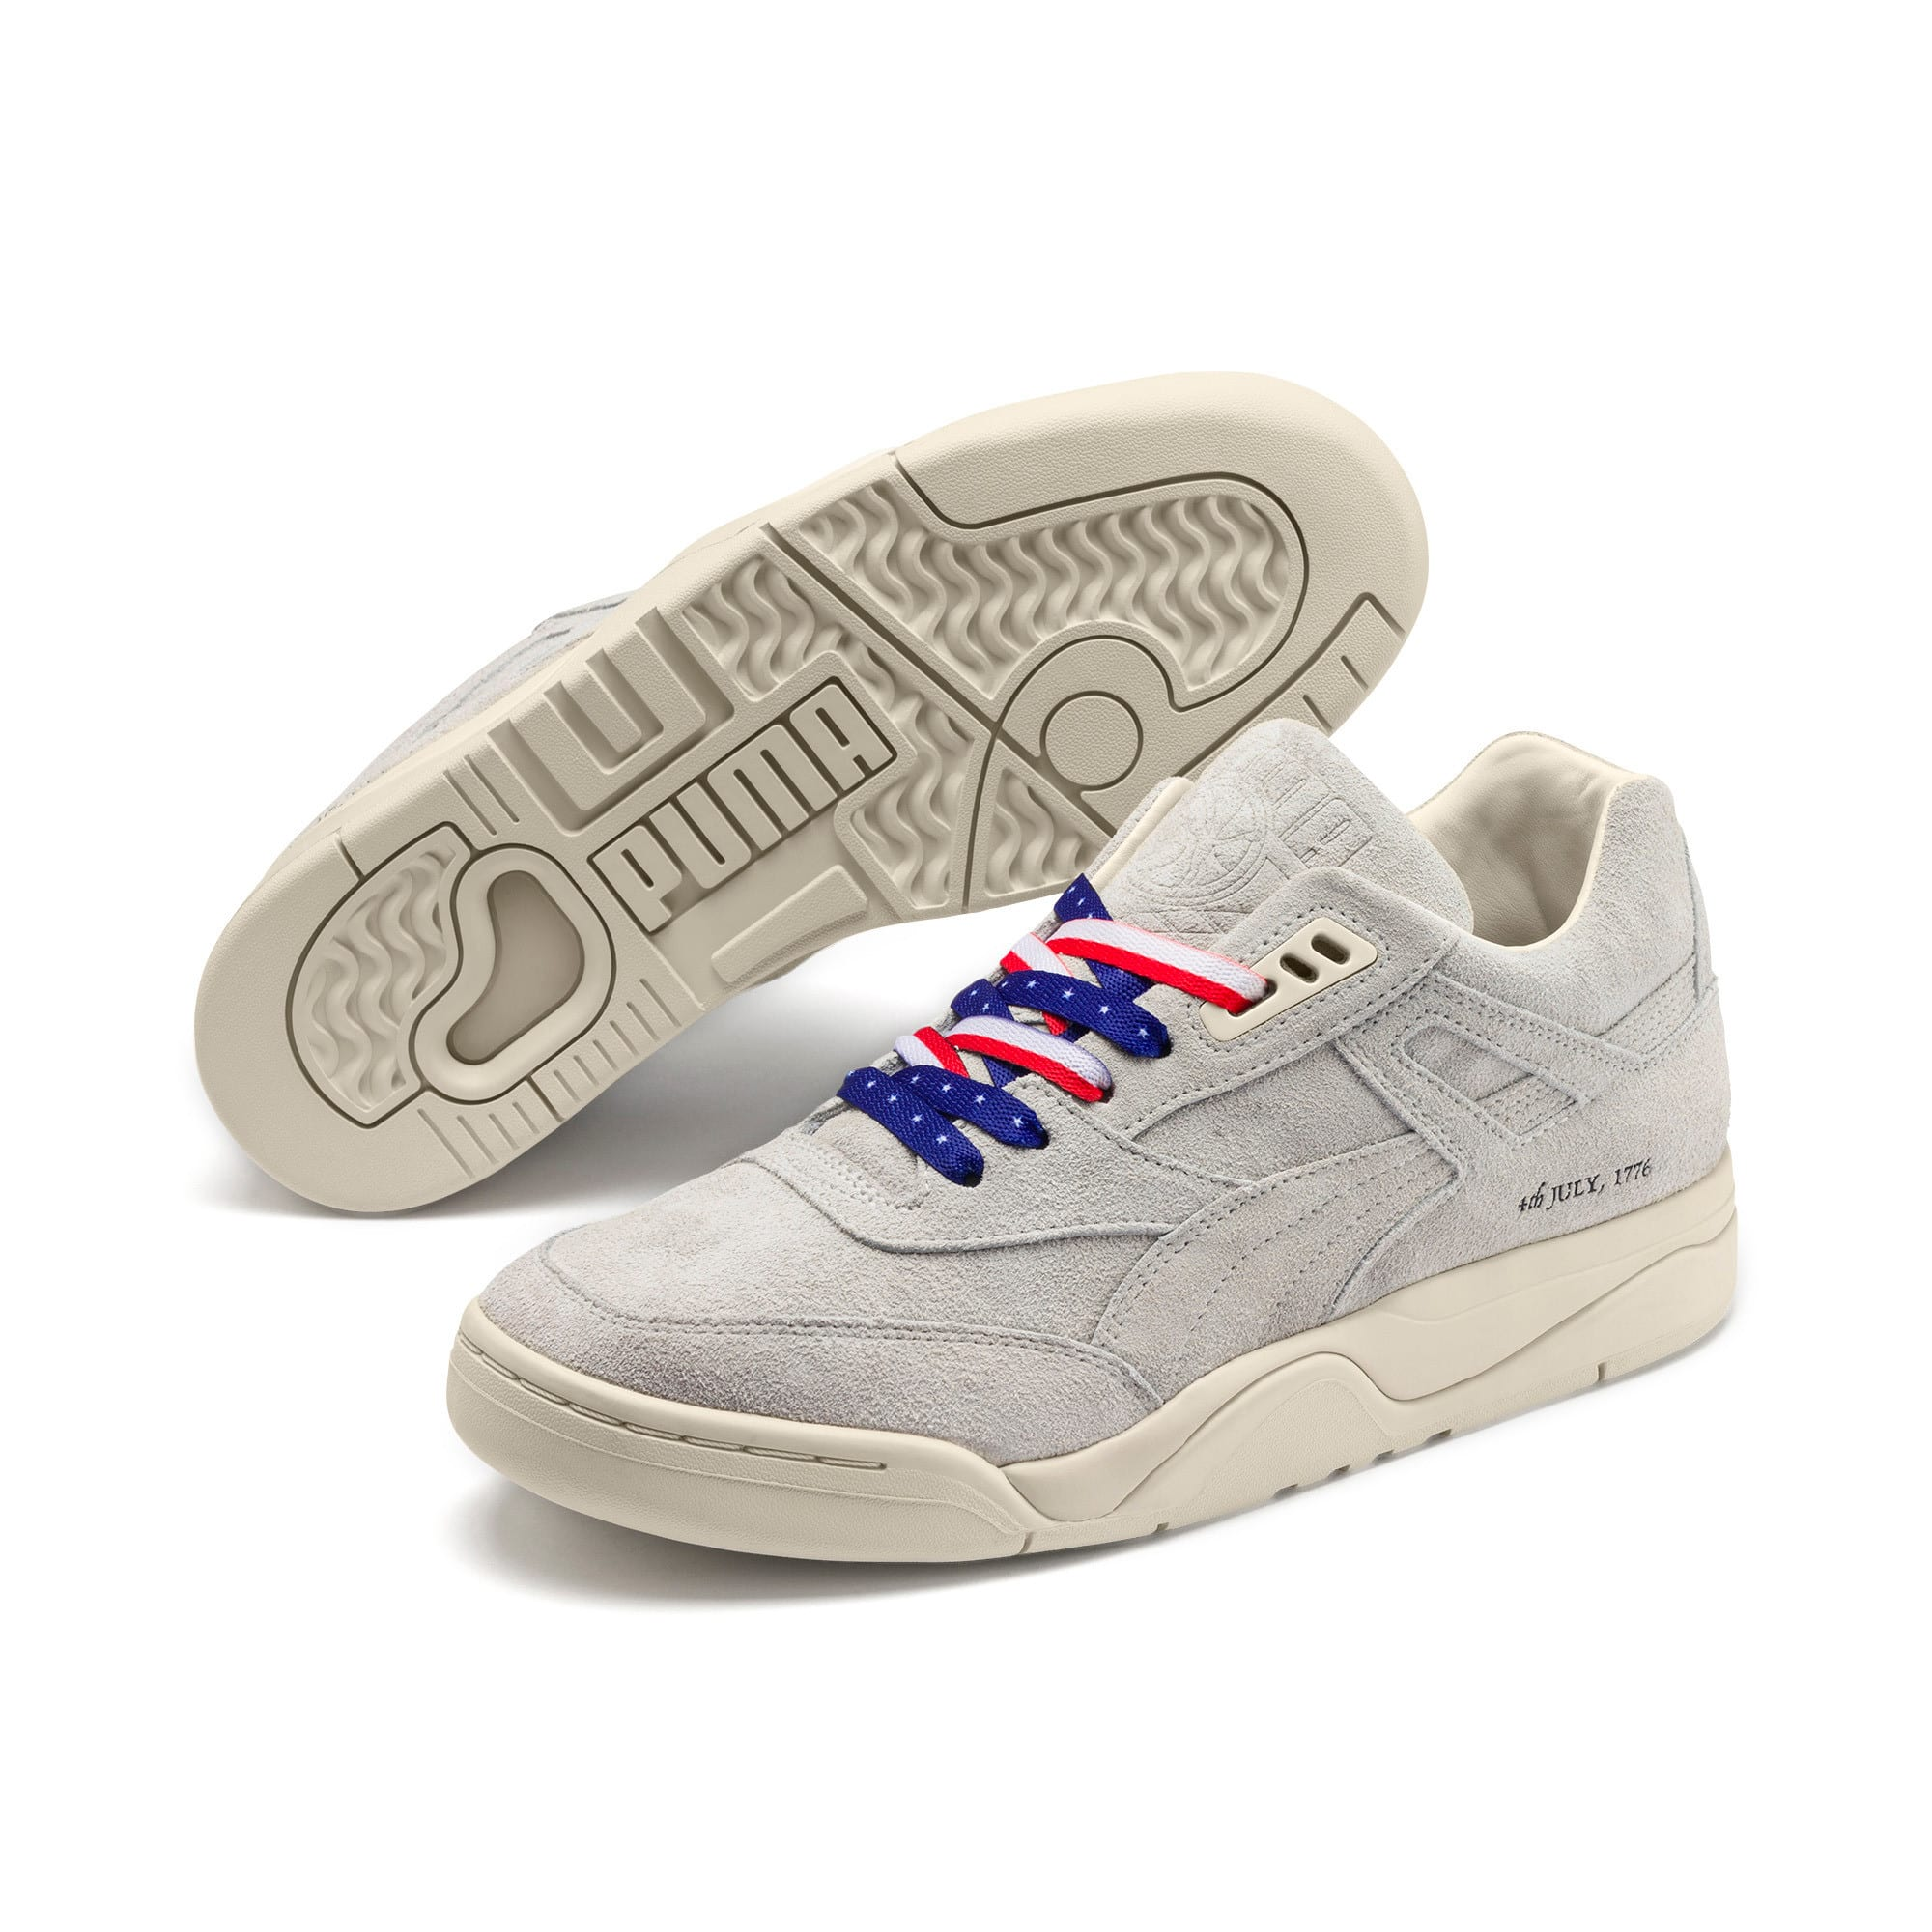 Thumbnail 9 of Palace Guard 4th of July Trainers, Whisper White-Puma Black, medium-IND